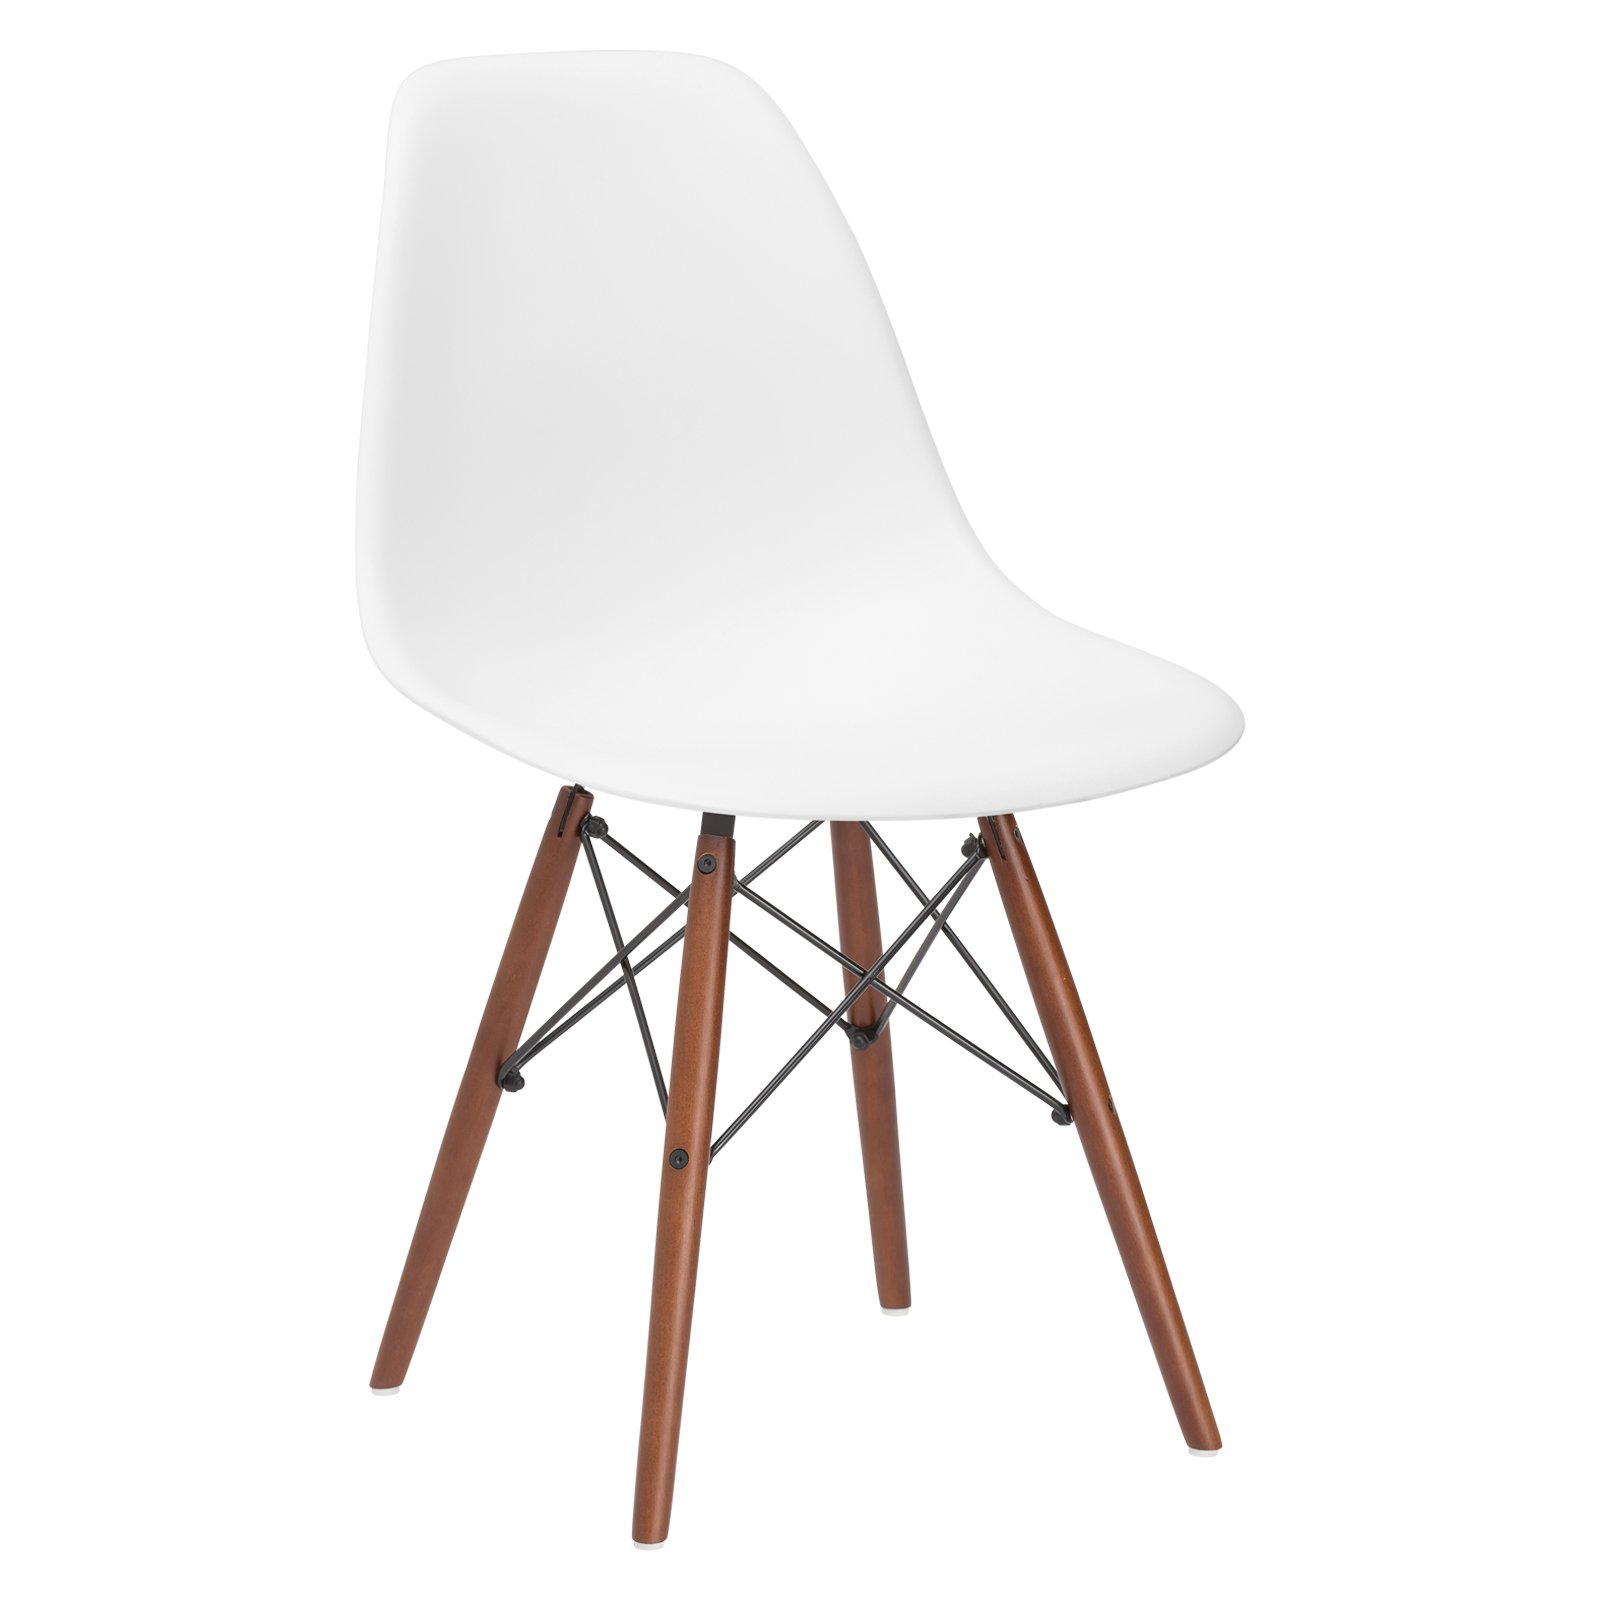 Poly and Bark Vortex Modern Mid-Century Side Chair with Wooden Walnut Legs for Kitchen, Living Room and Dining Room, White by POLY & BARK